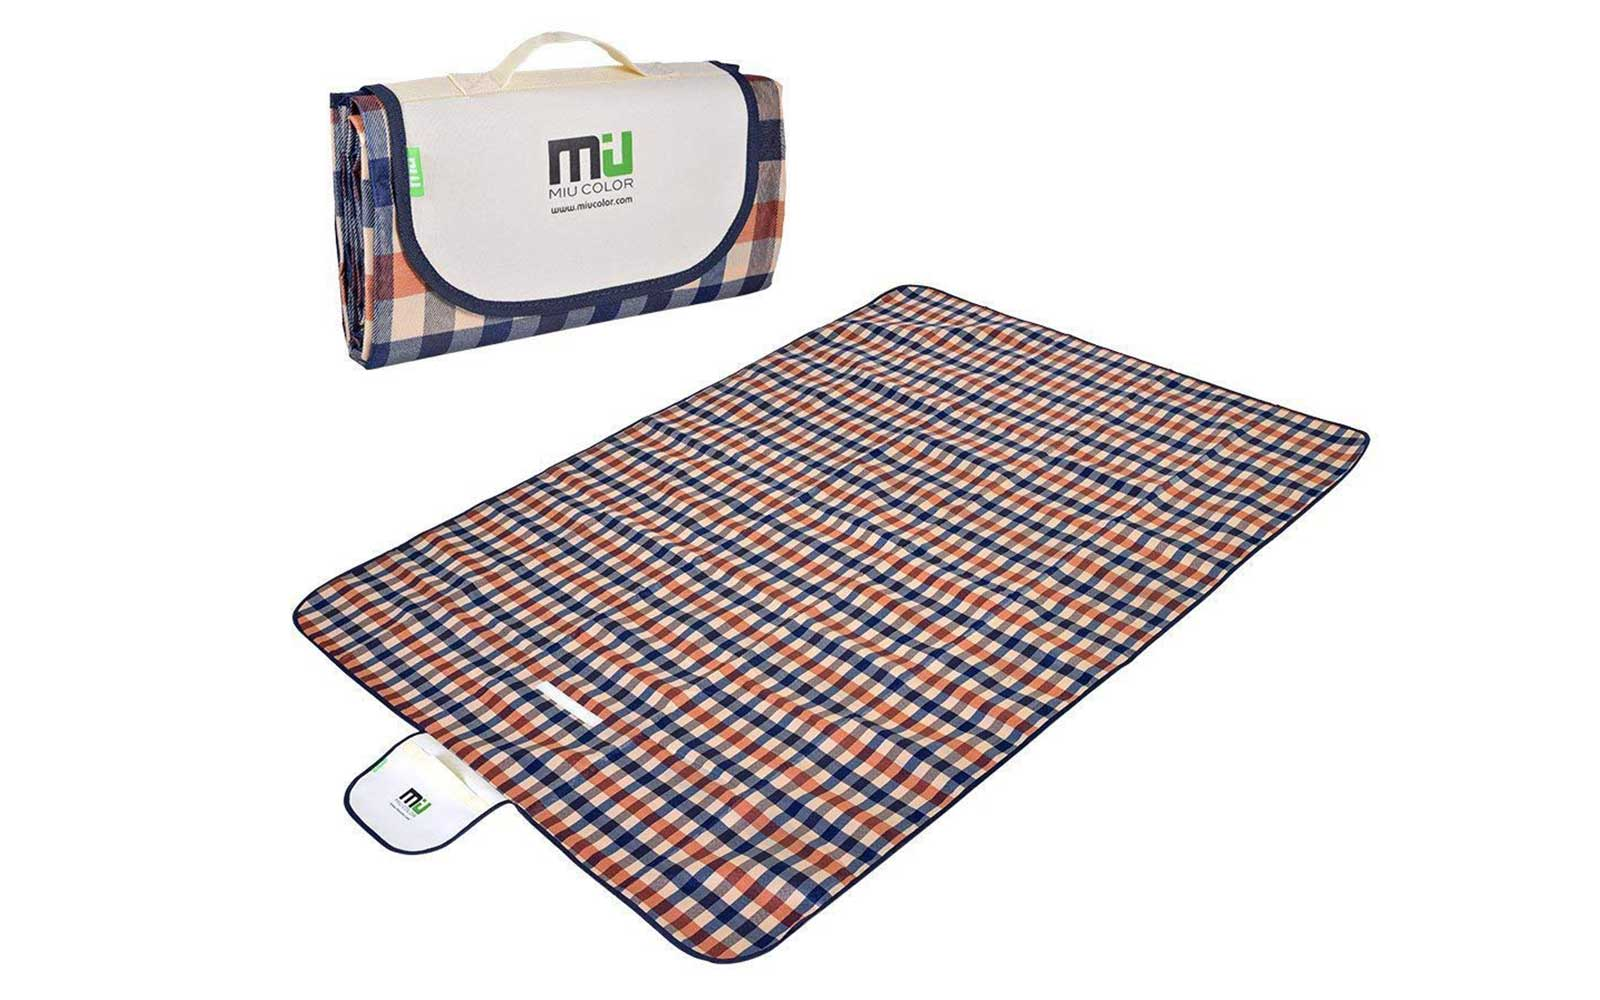 Picnic blanket for sale on Amazon